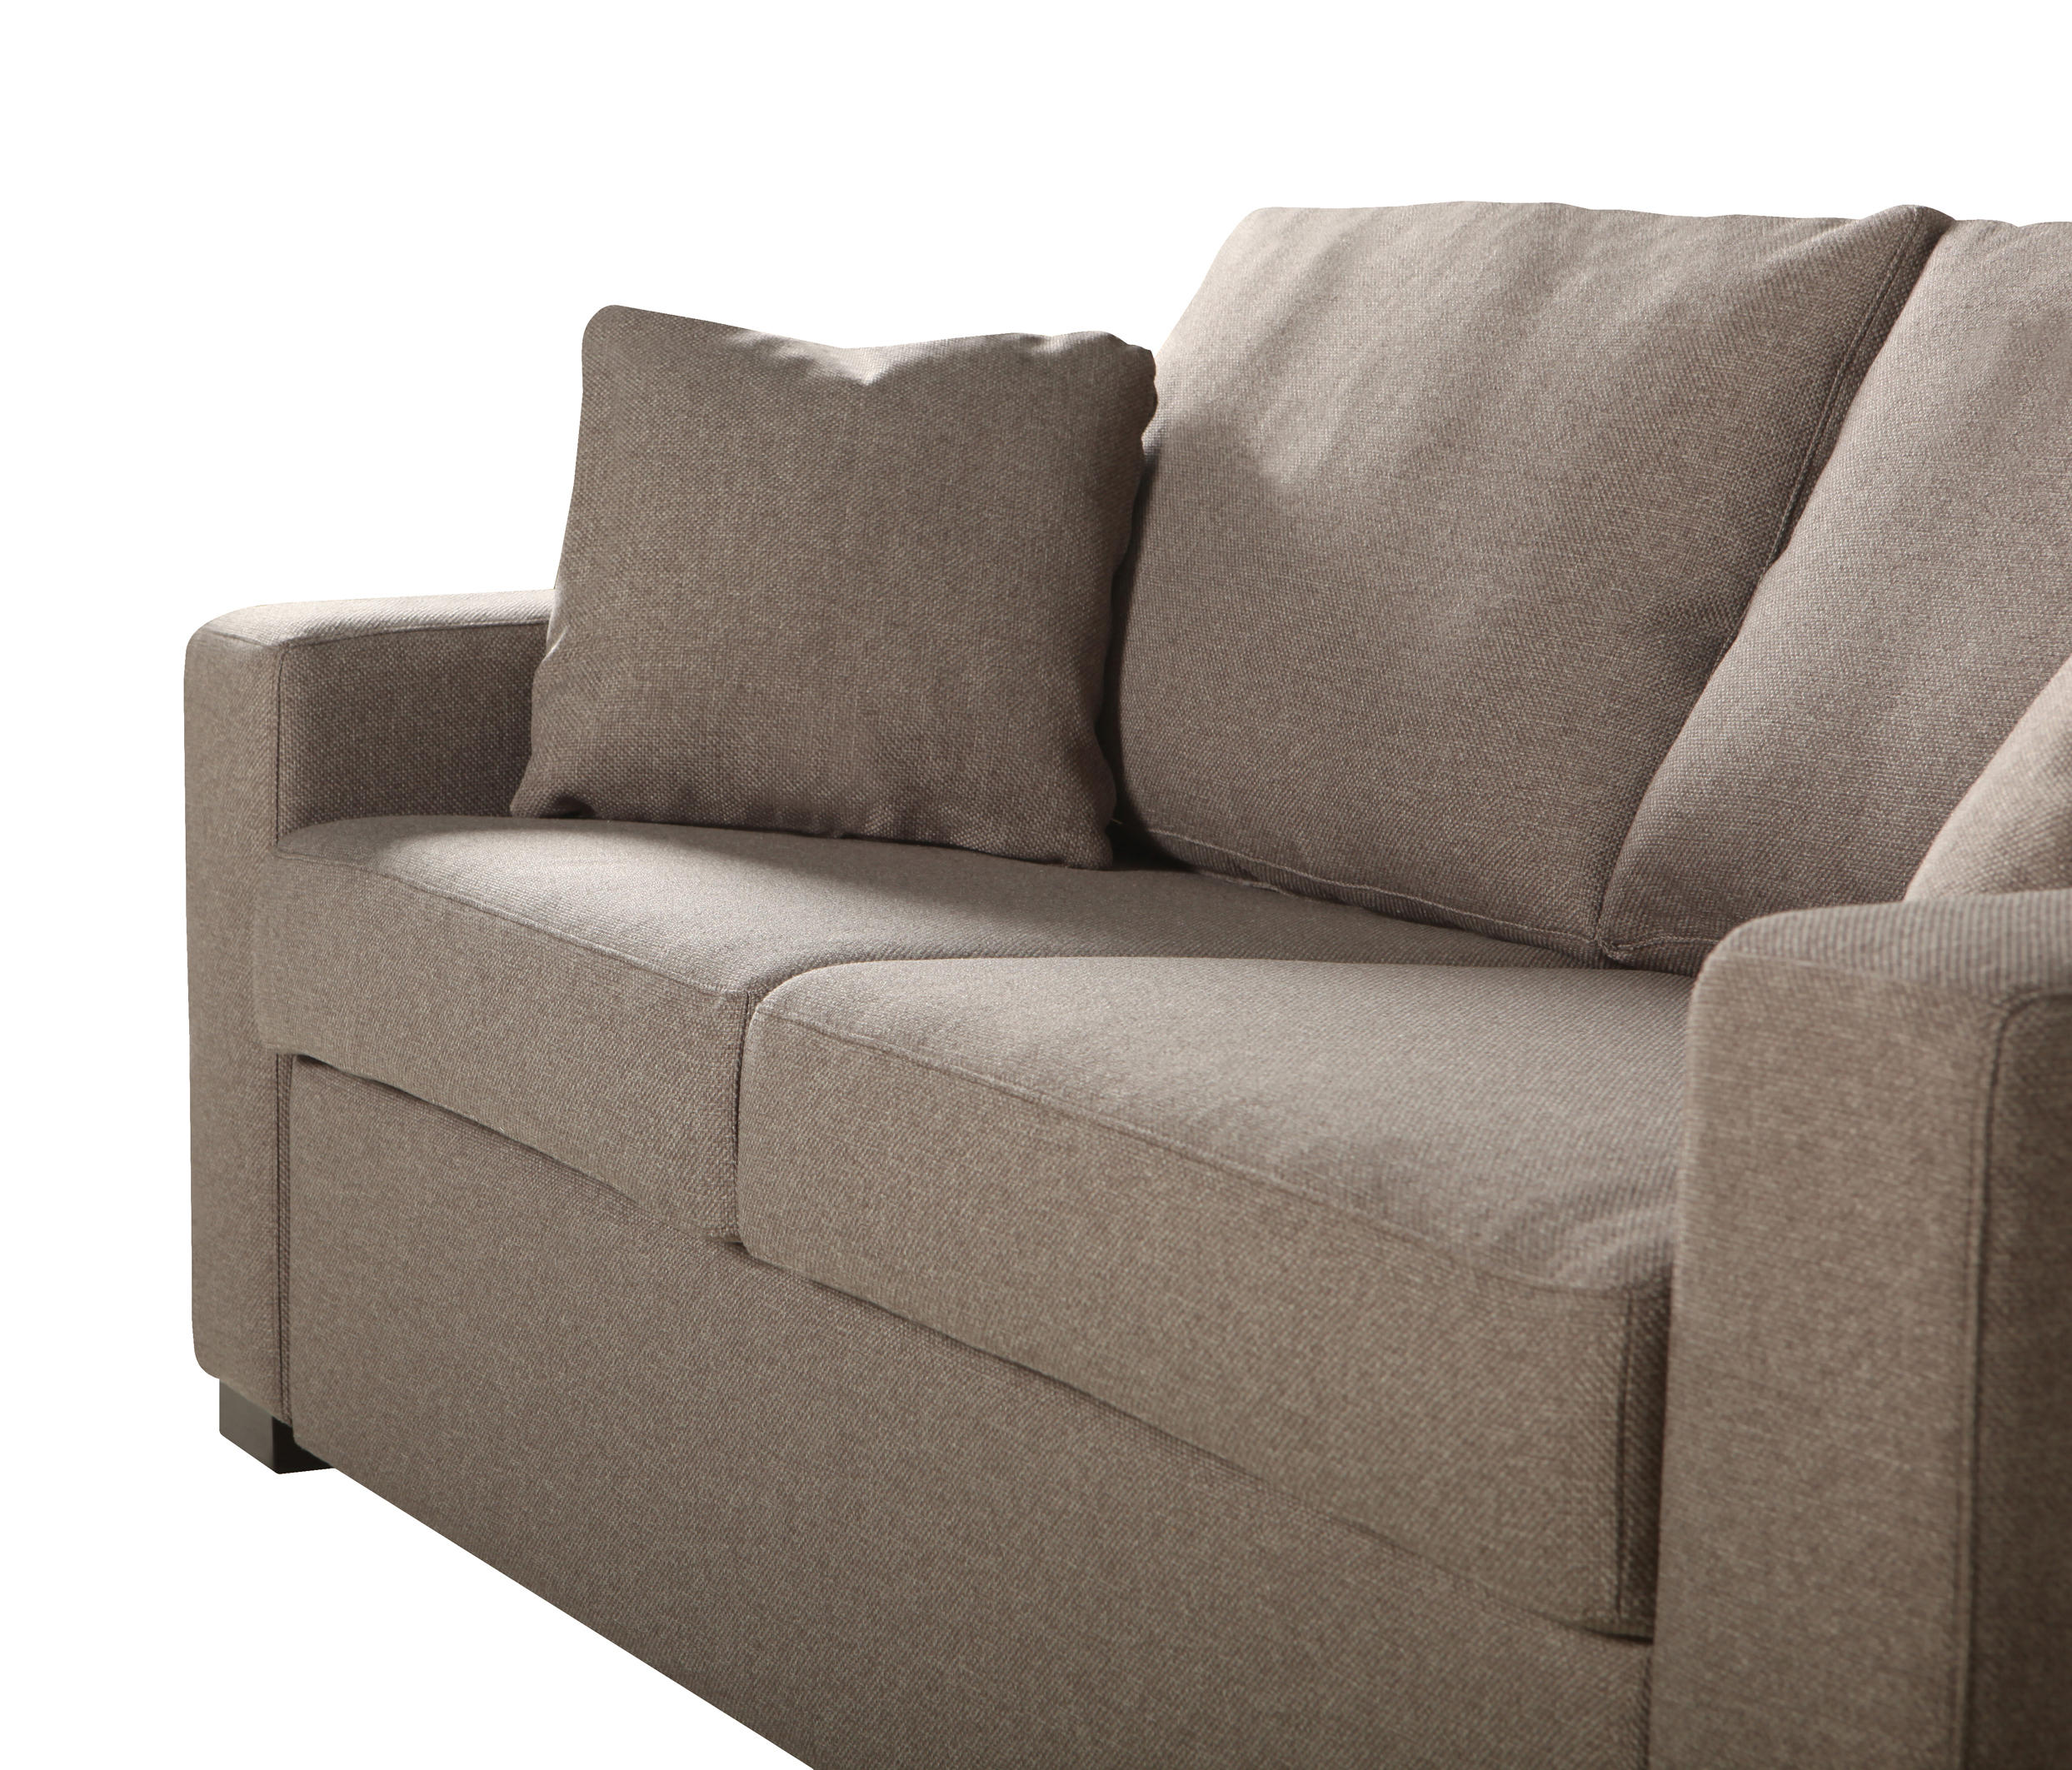 Tucson By Sits Sofas